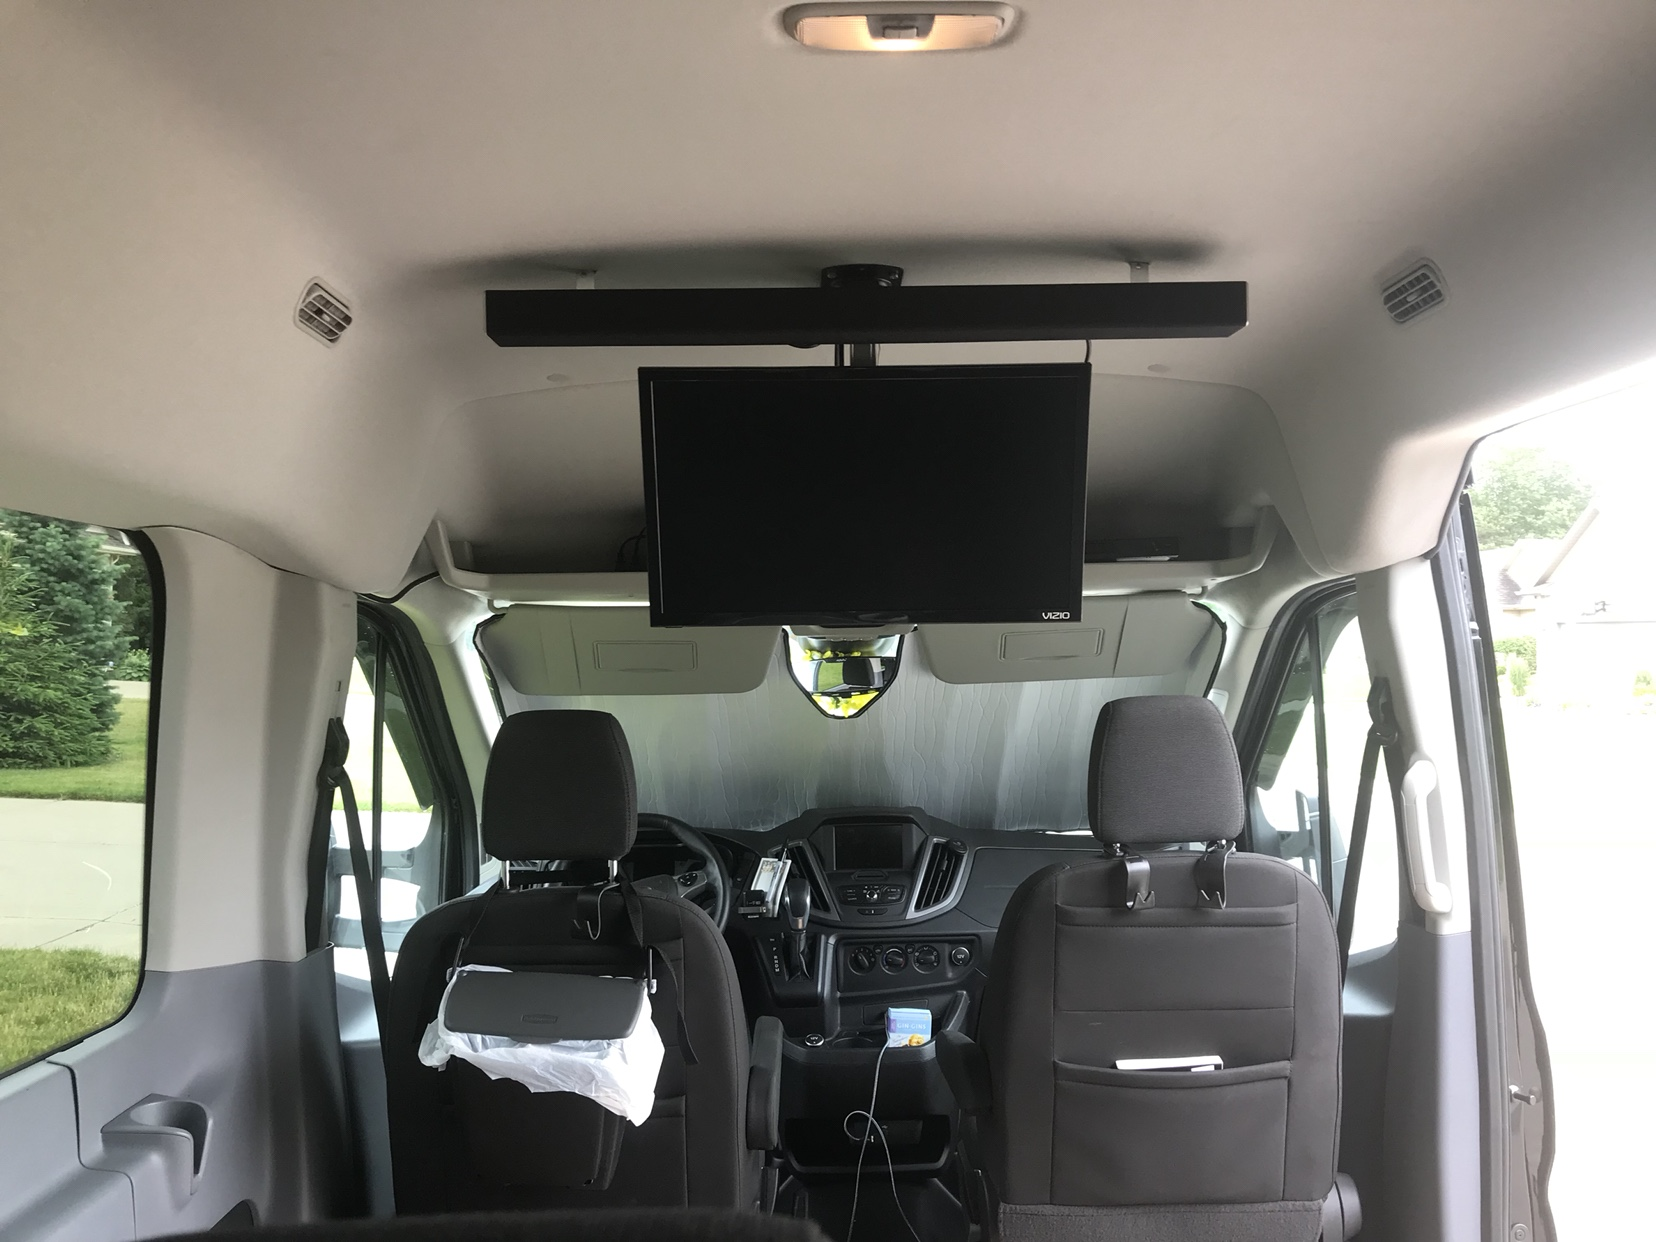 2017 Transit Passenger Wagon Tv Home Theater Install